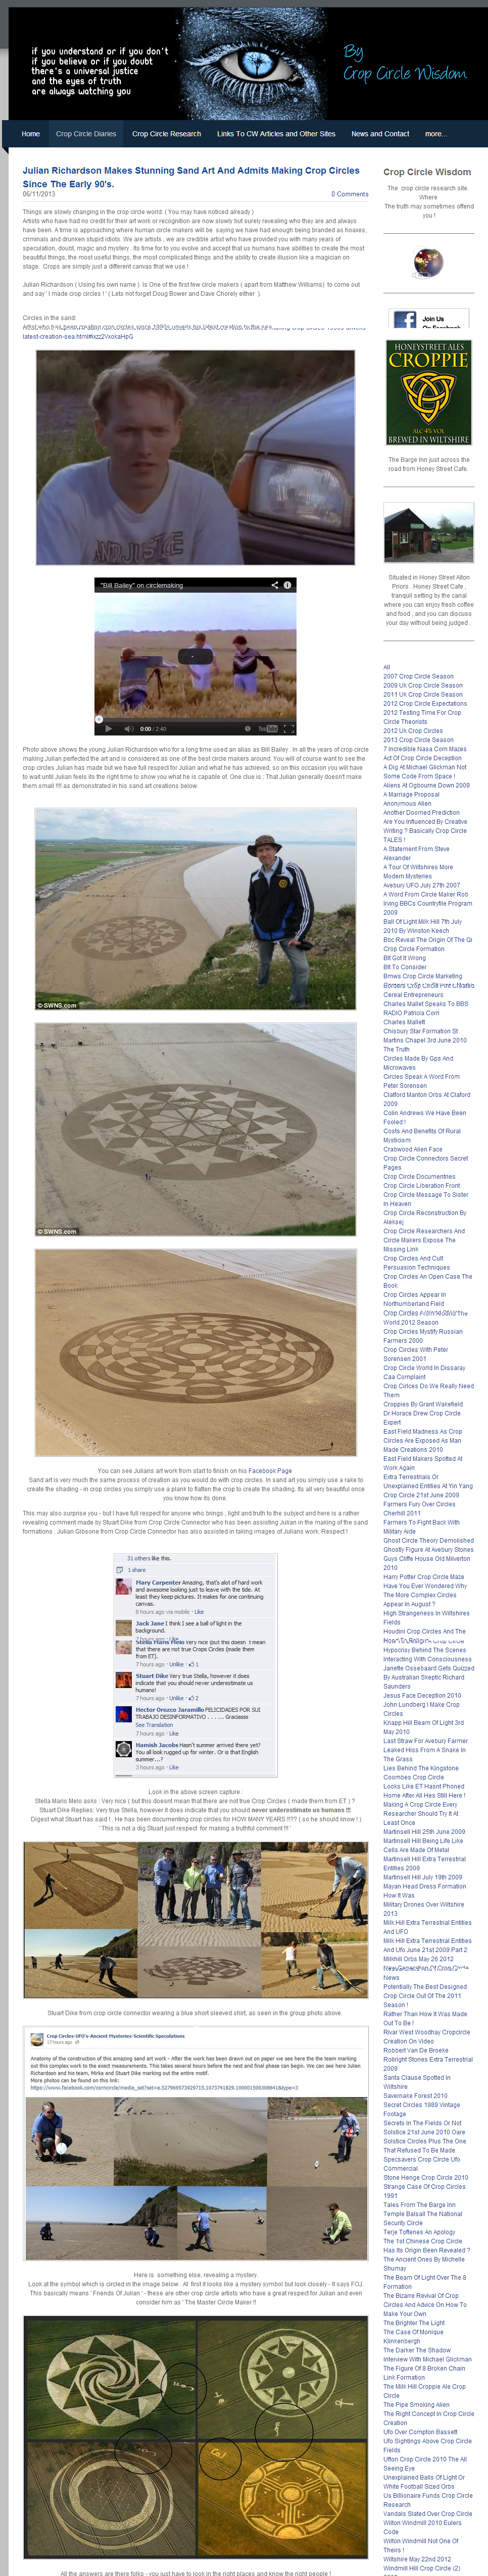 Julian Richardson Makes Stunning Sand Art And Admits Making Crop Circles Since The Early 90 s. Crop Circle Secrets Revealed